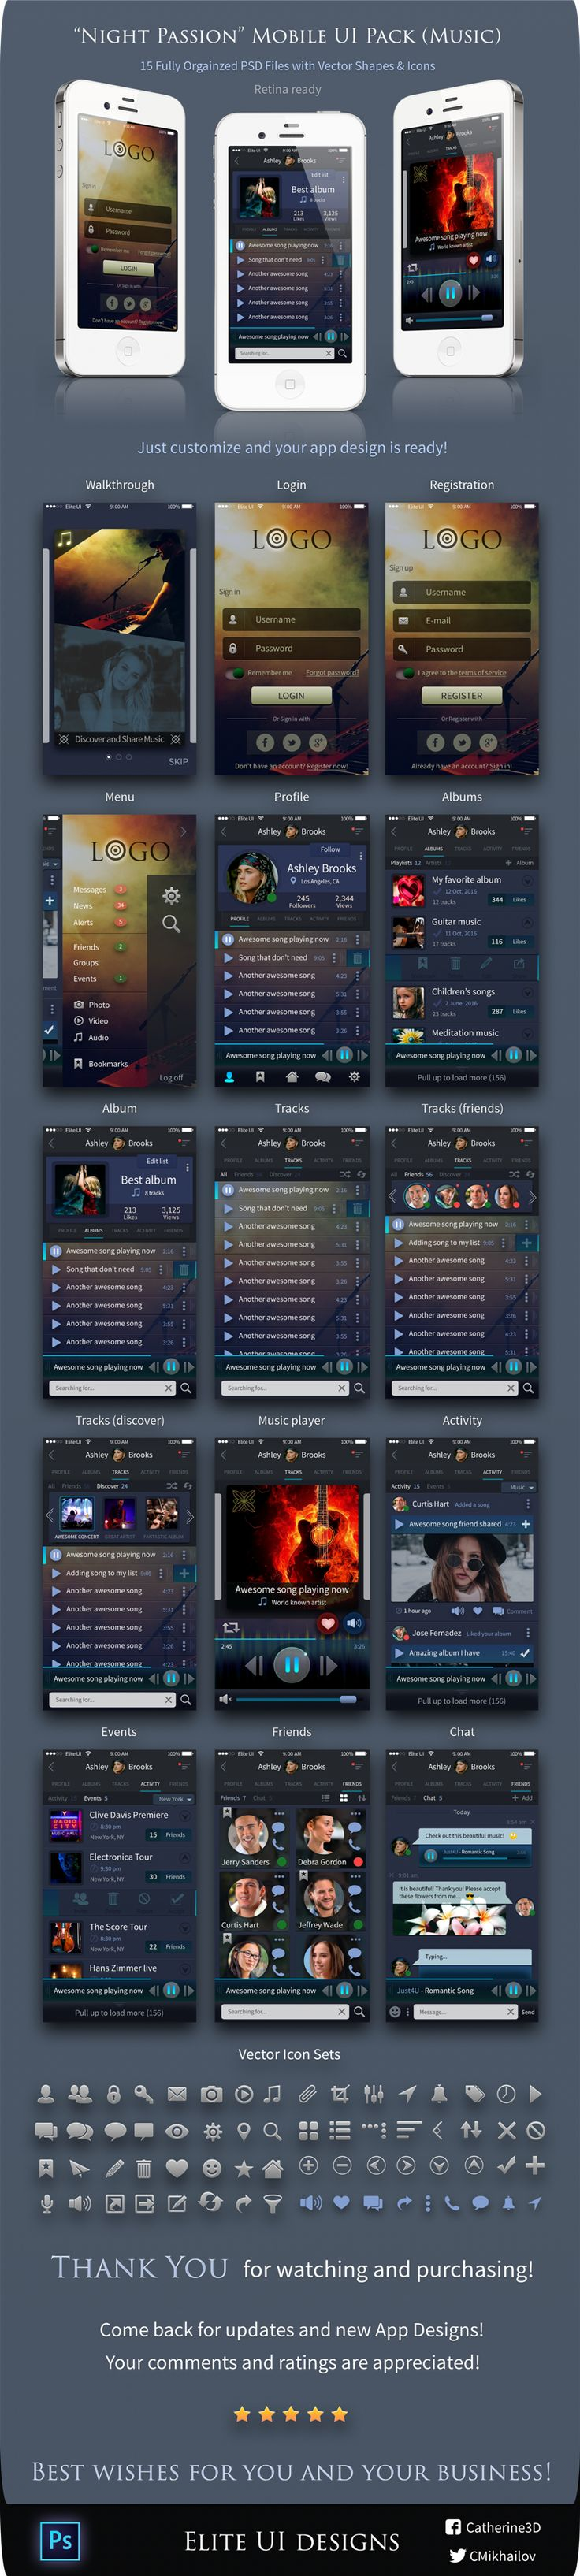 Introducing a beautiful UI kit for mobile apps! The theme of the kit is music and it should make a great music player for all music lovers out there! Please visit our website for more awesome UI / UX designs.